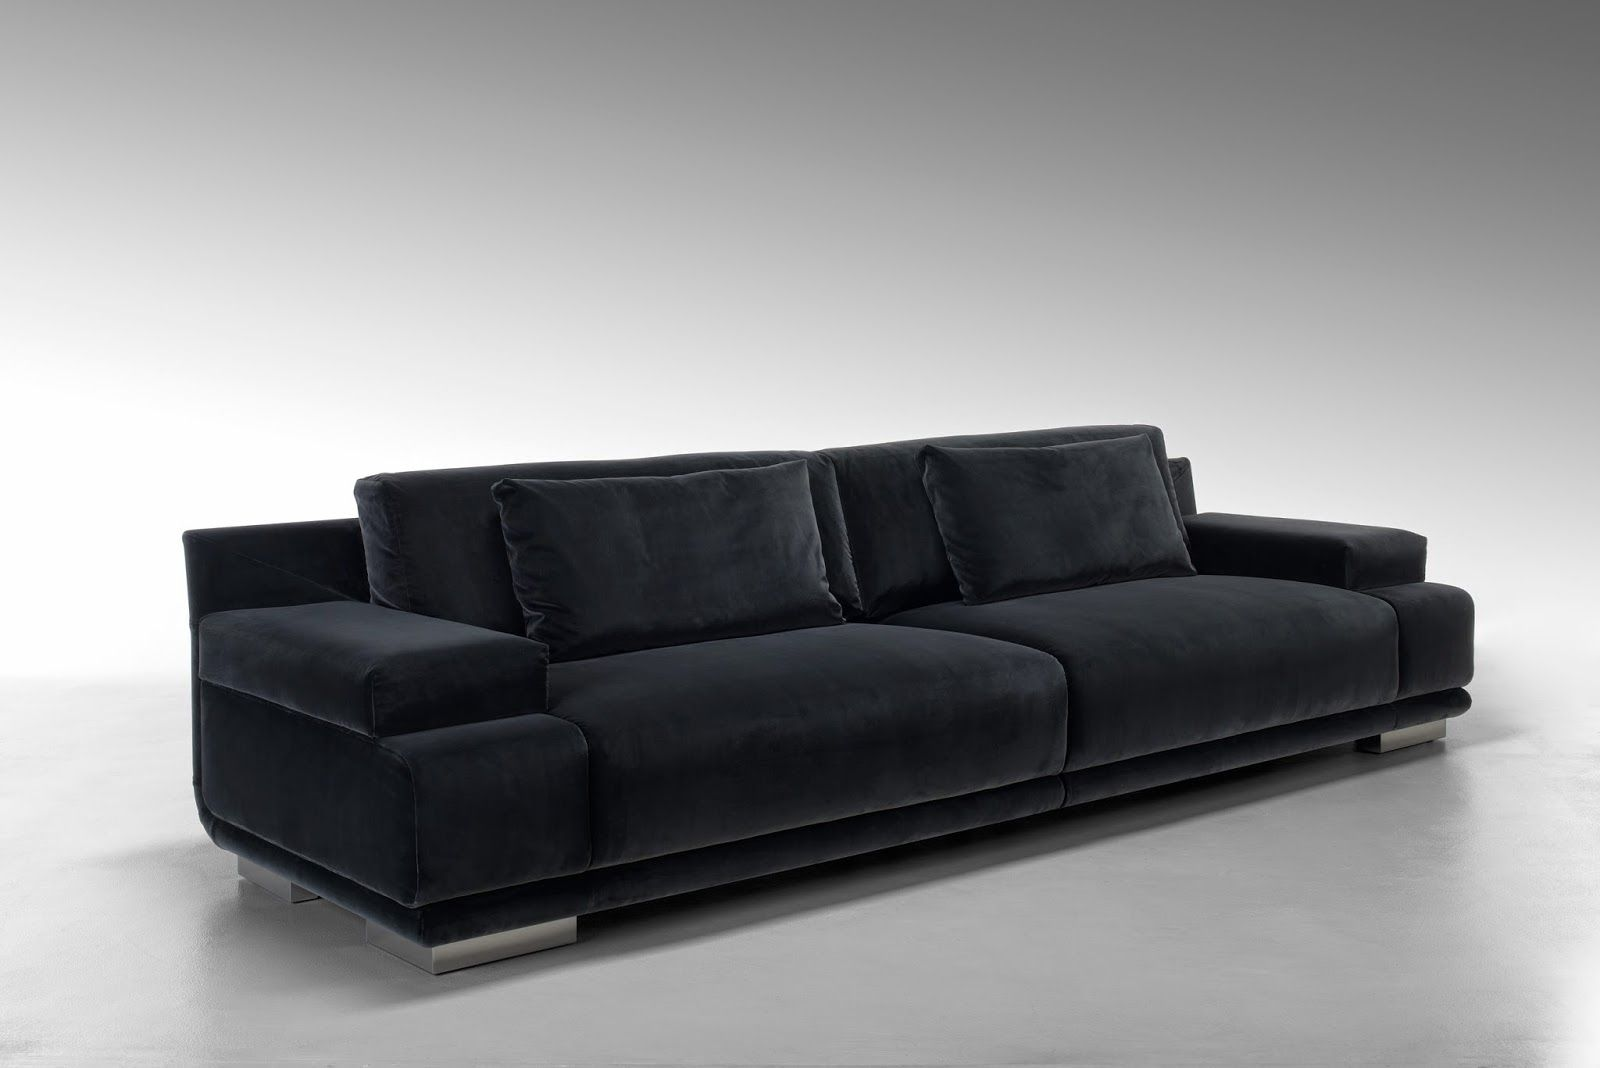 Fendi casa artu sofa designed by thierry lemaire google for Casa sofa sillones